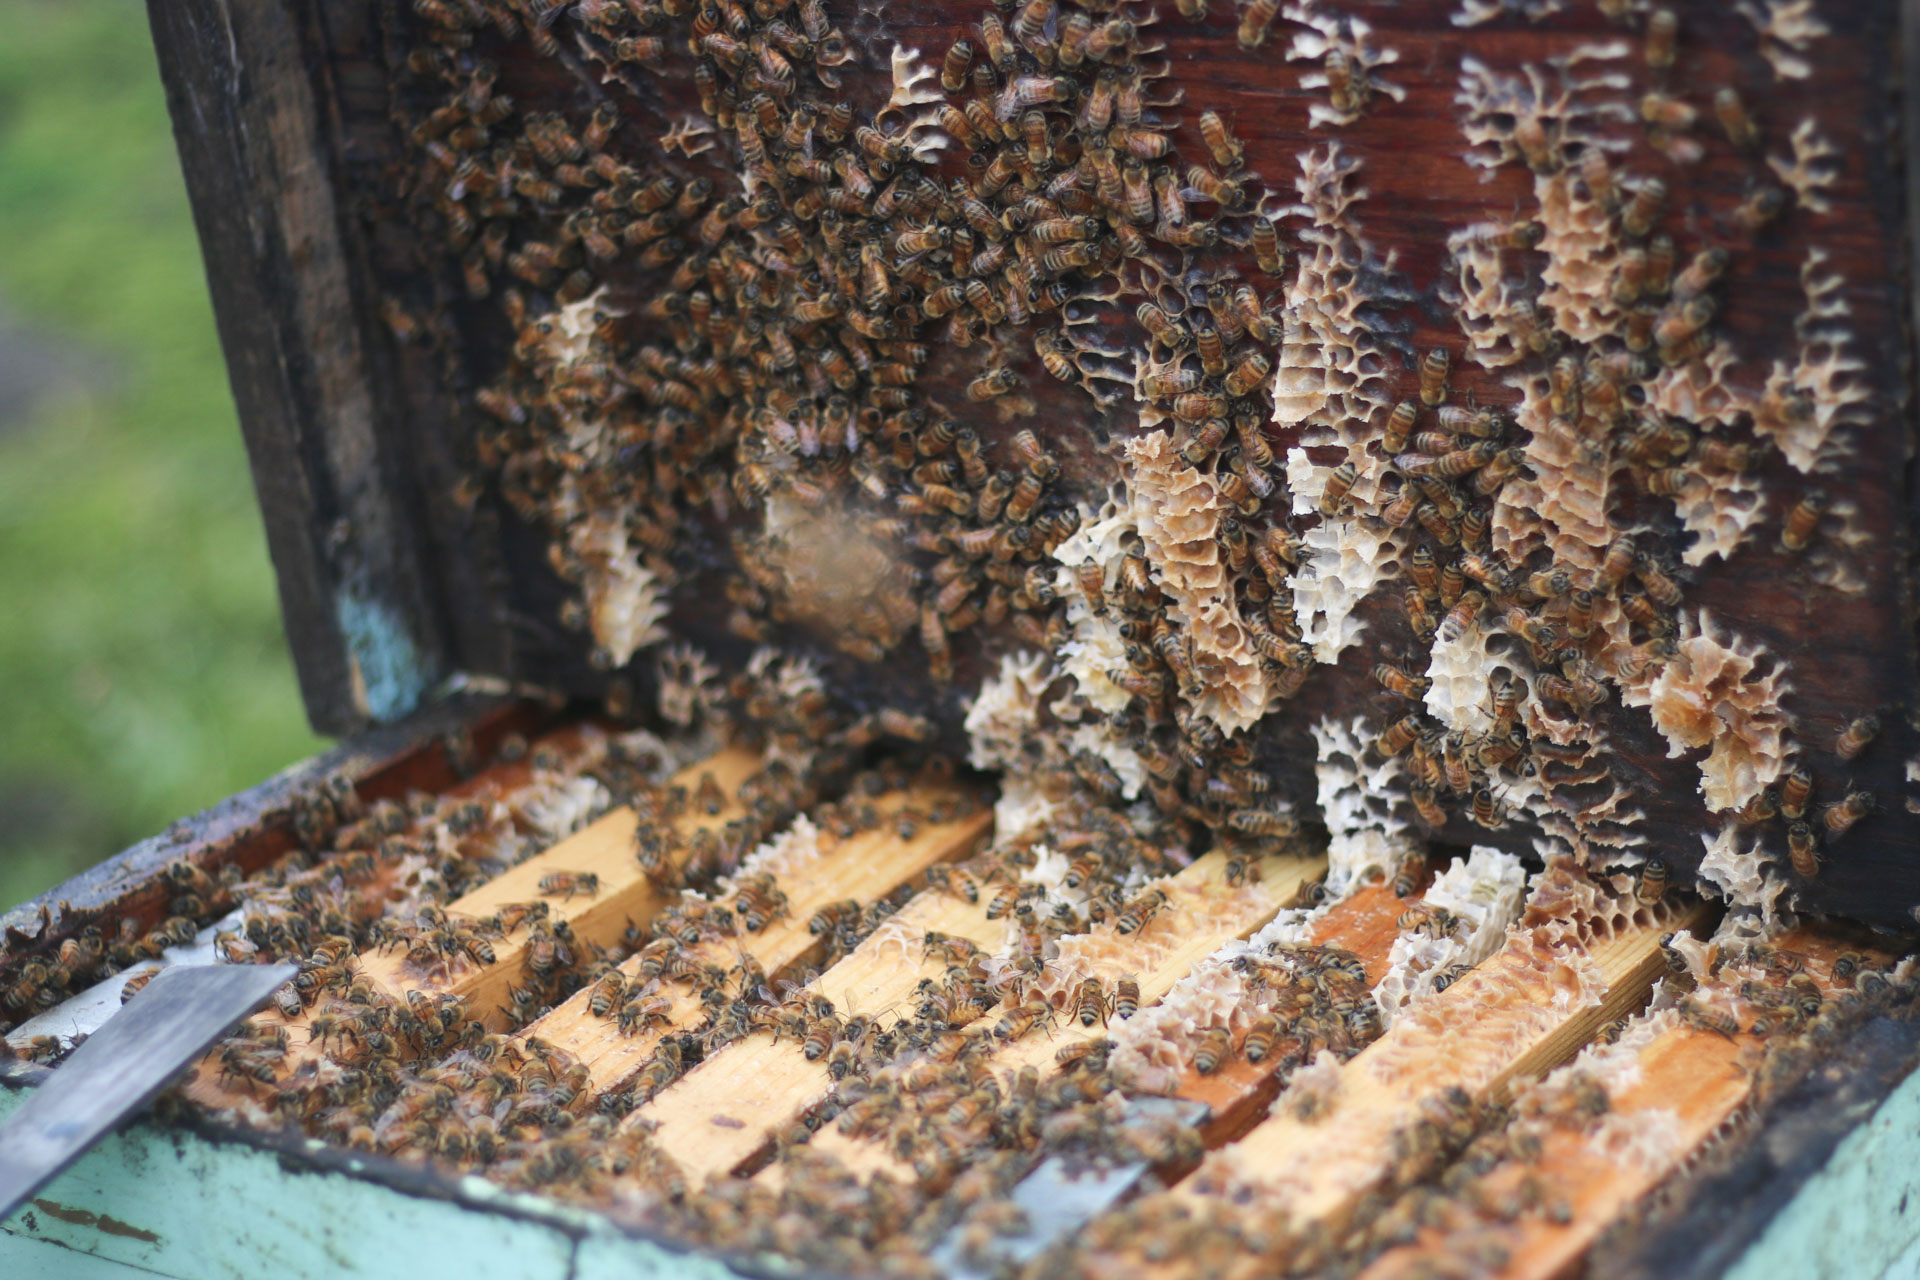 The view inside the beehive before the honeycomb is extracted. PHOTO: Chance Punahele Photography